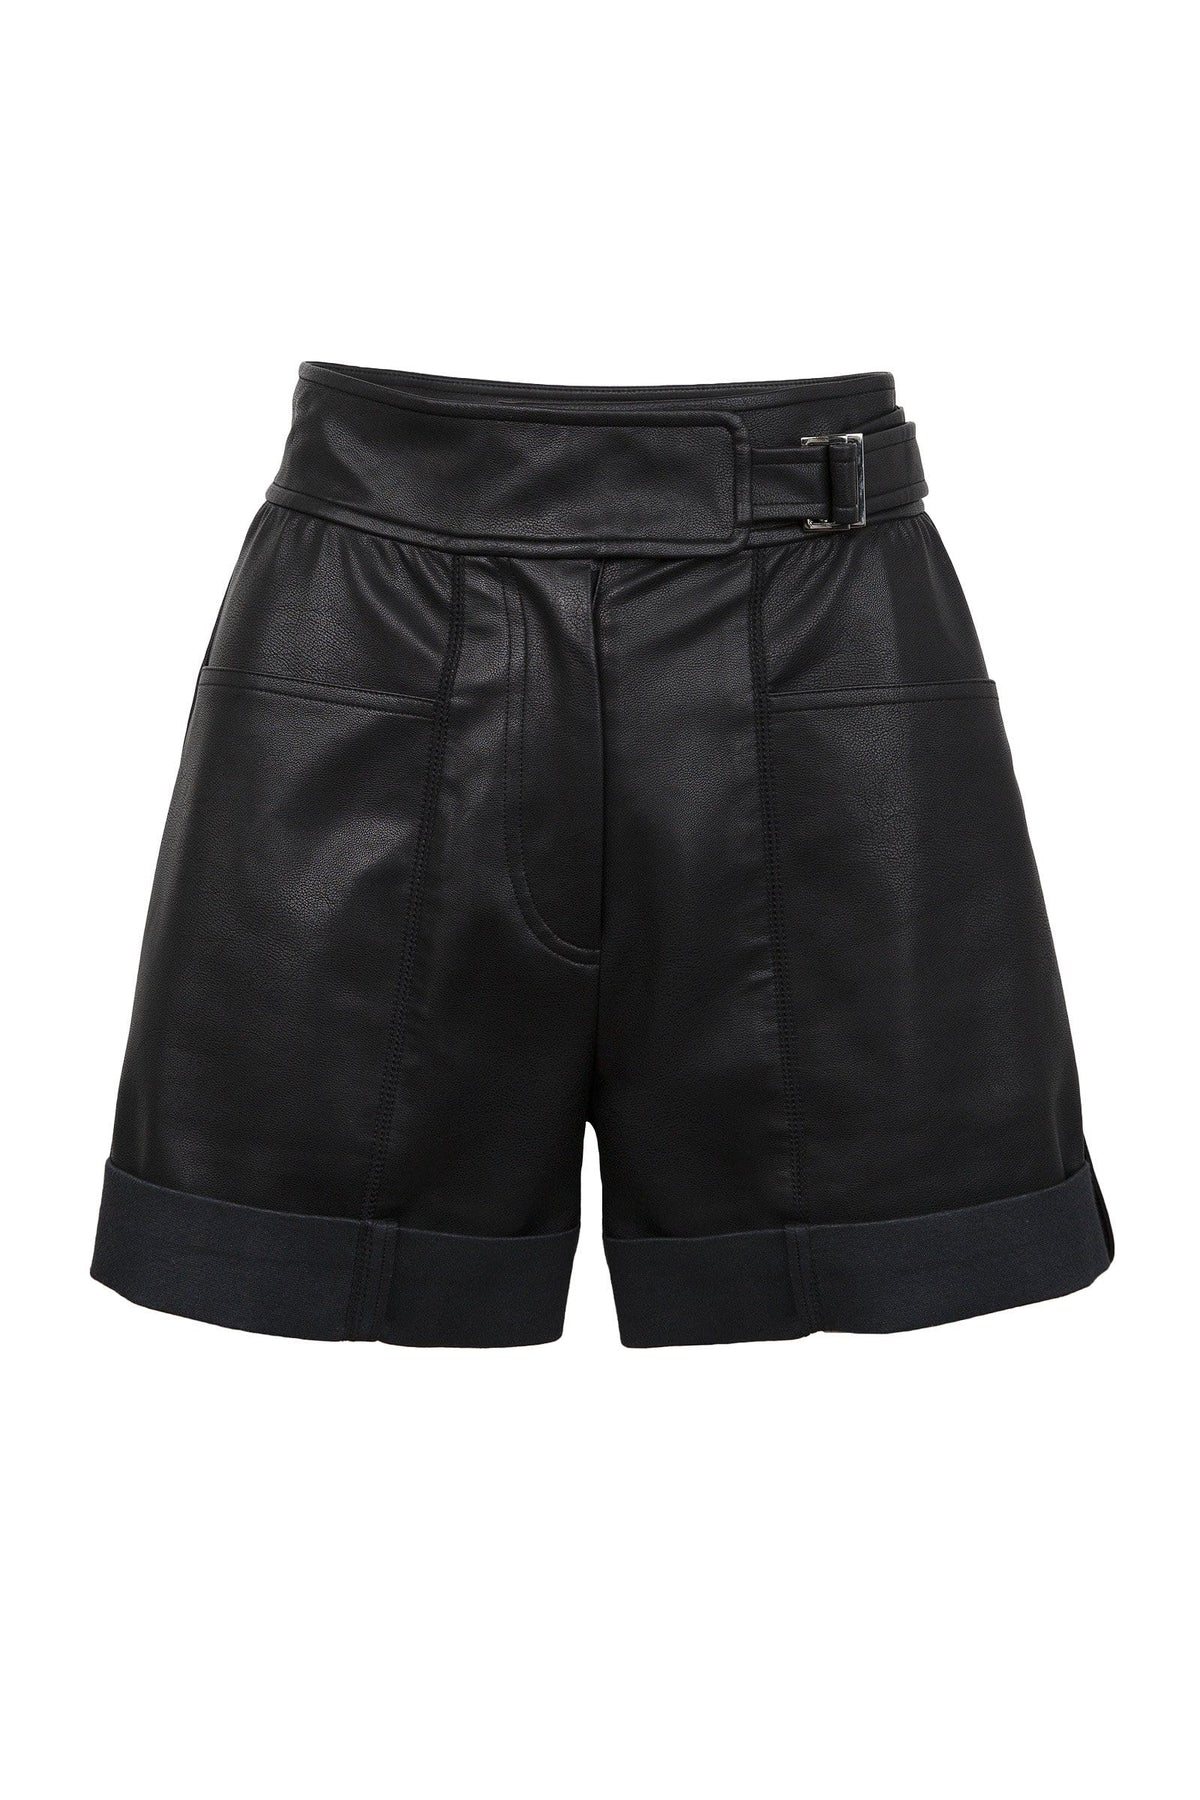 Caryn Black Leather Belted Shorts